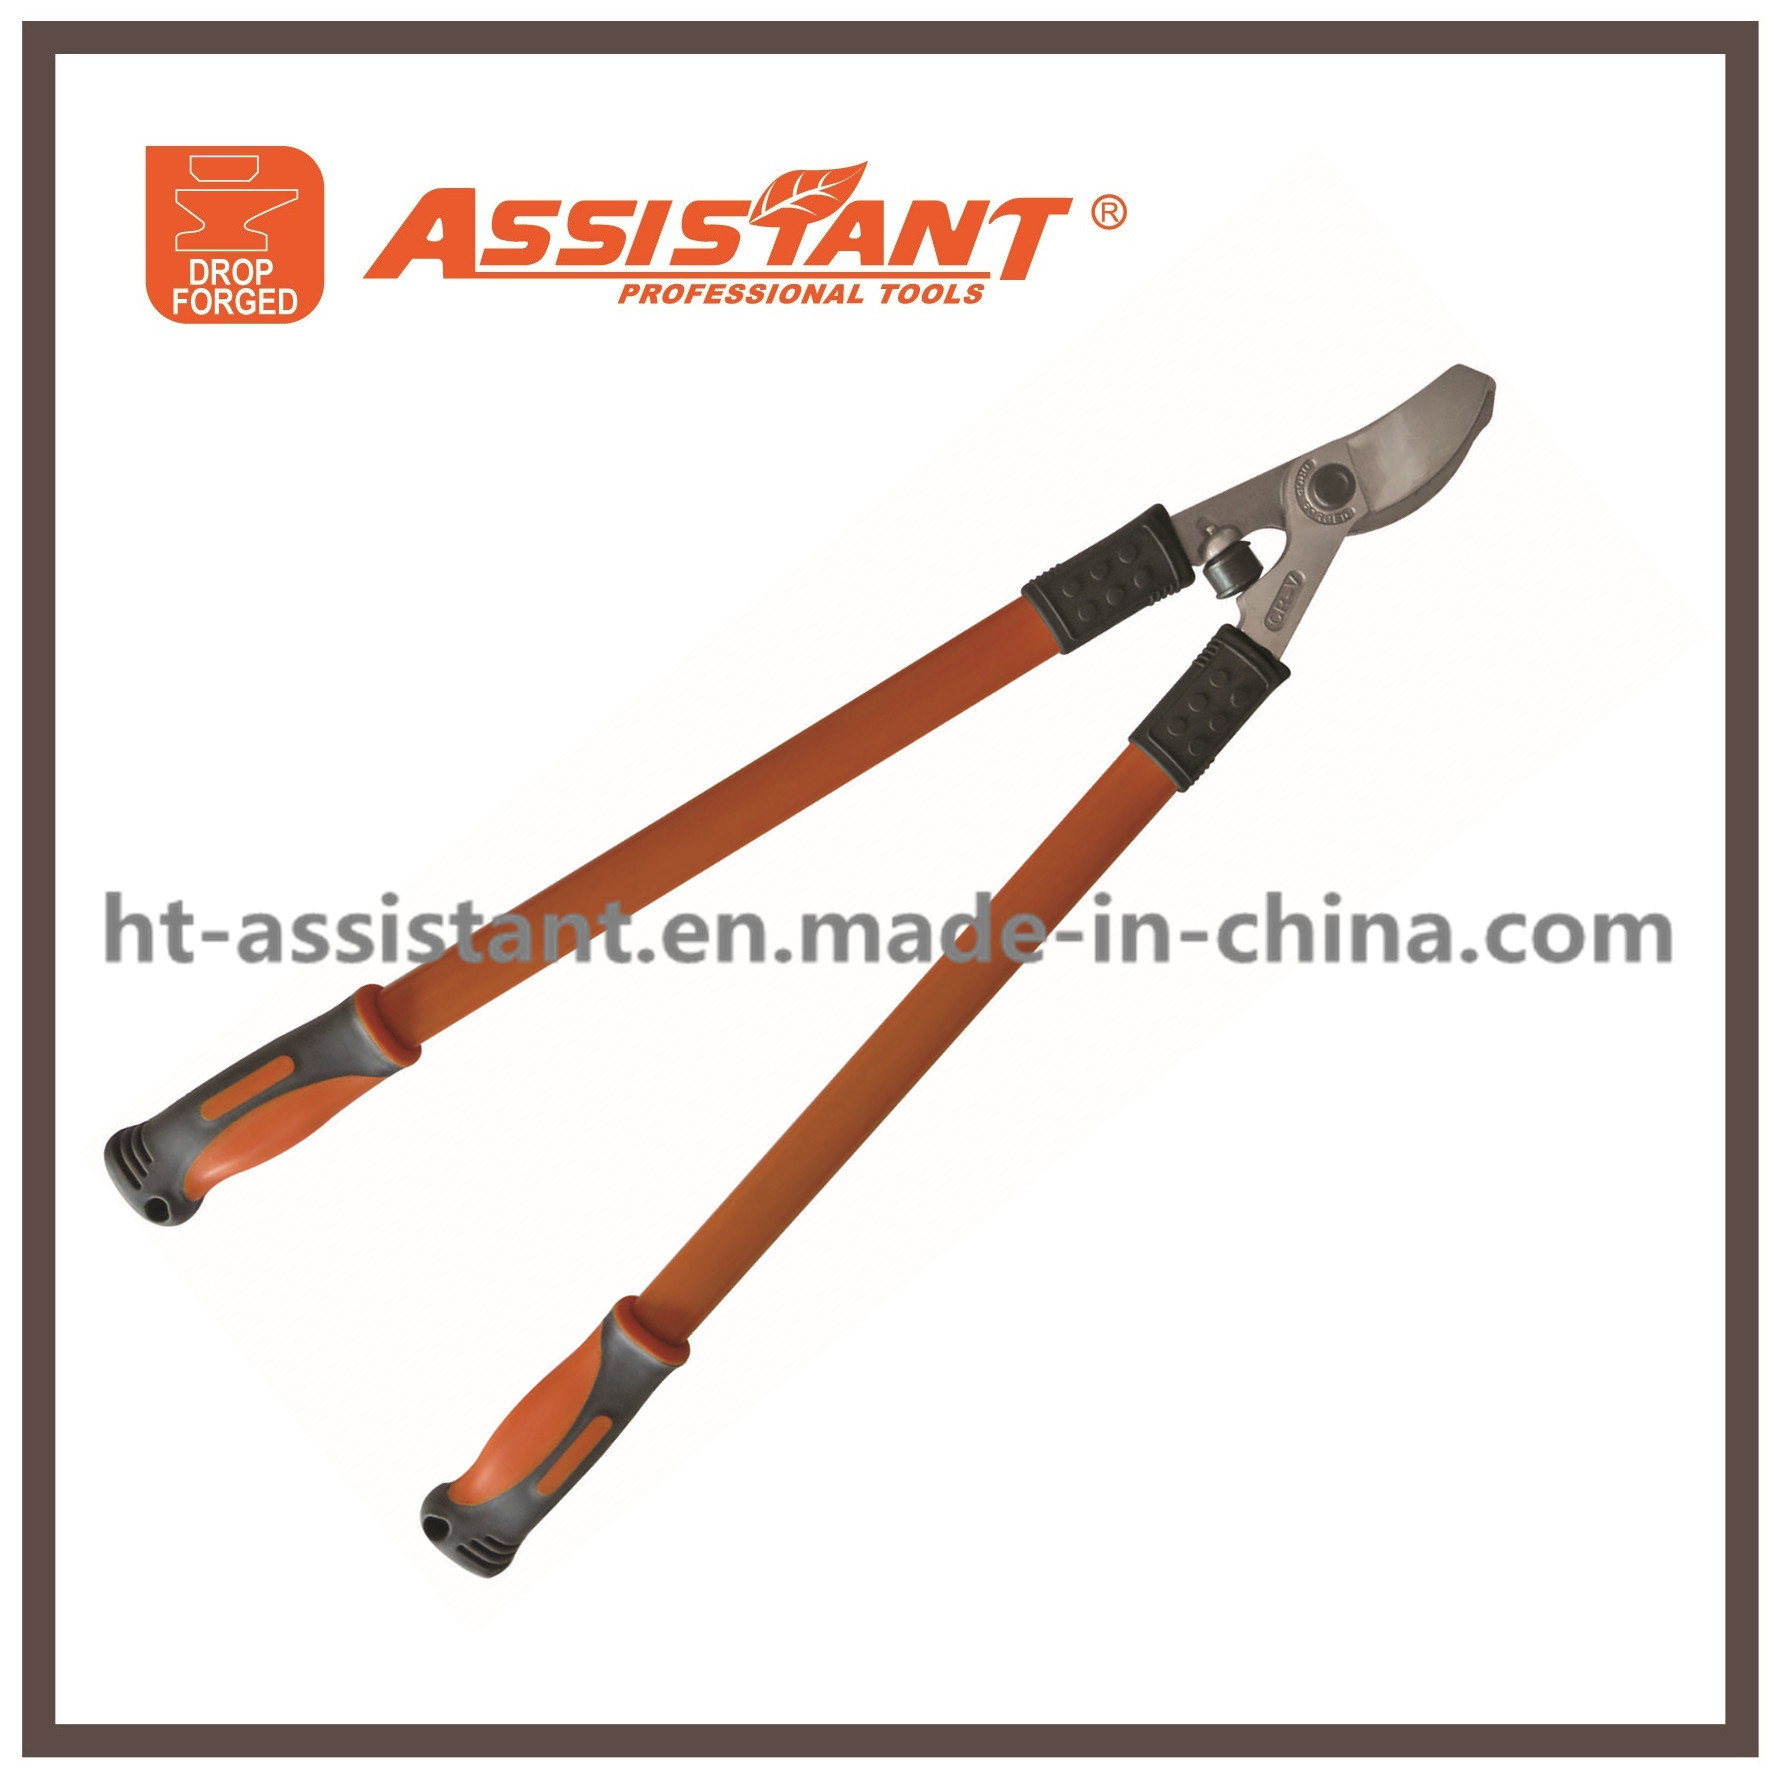 Tree Pruning Tools China Garden Orchard Bypass Lopping Shears Drop Forged Tree